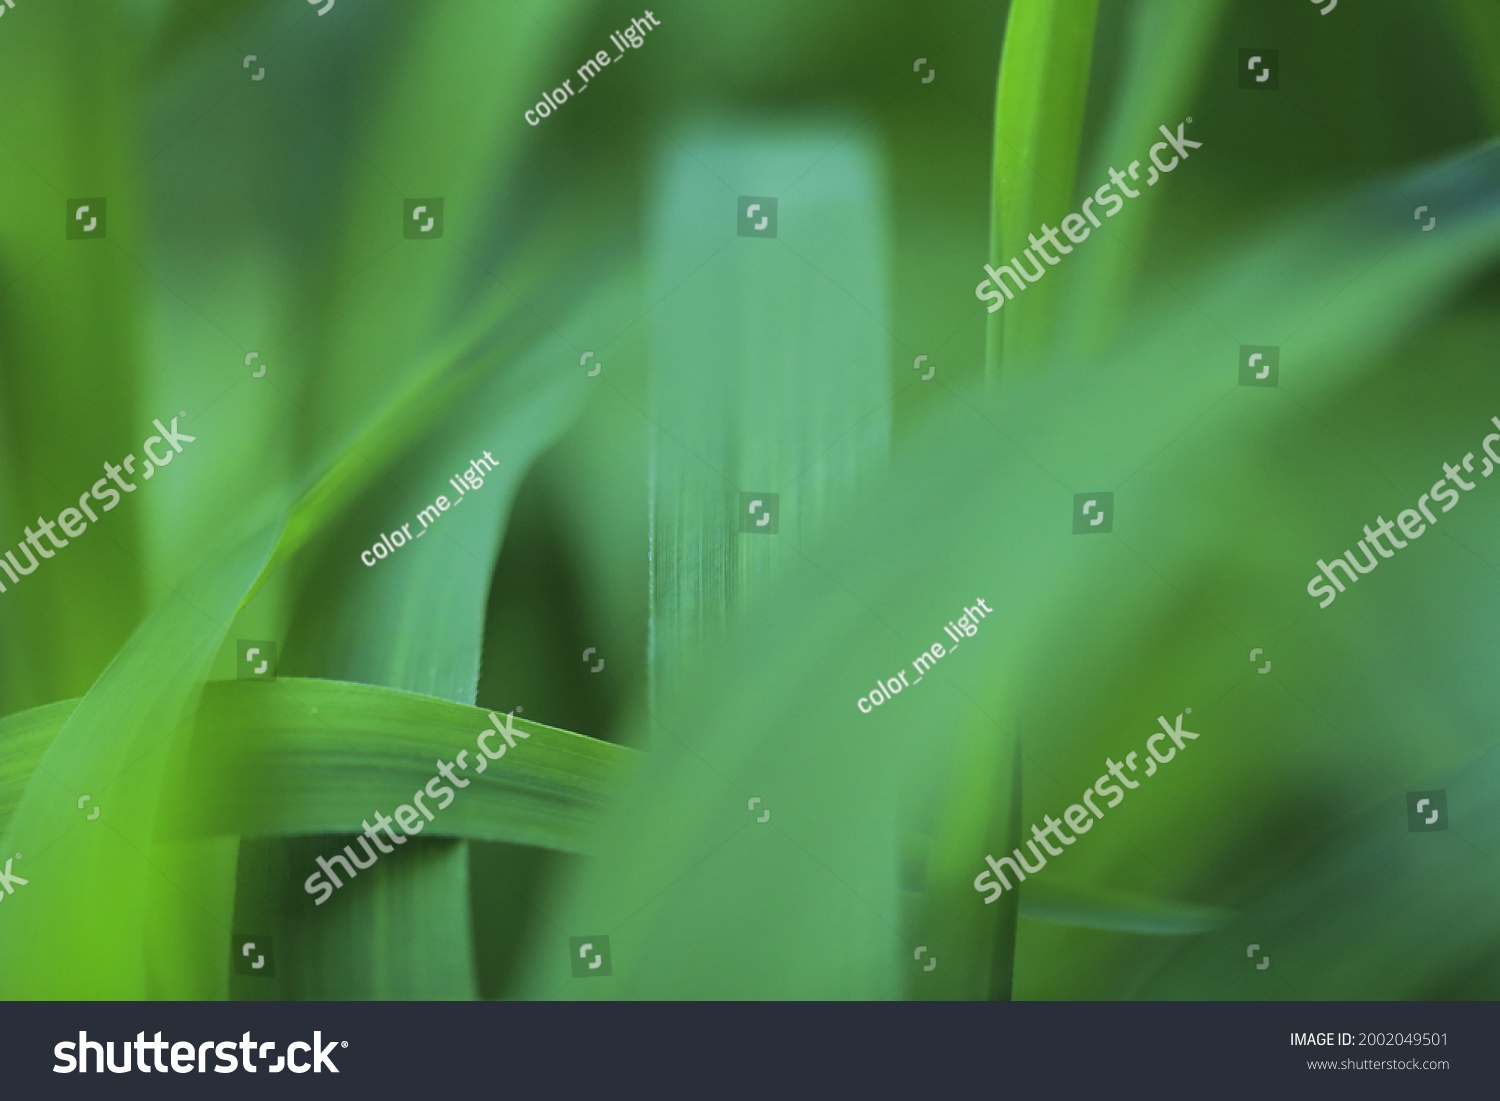 Abstract blurred background of green grass.